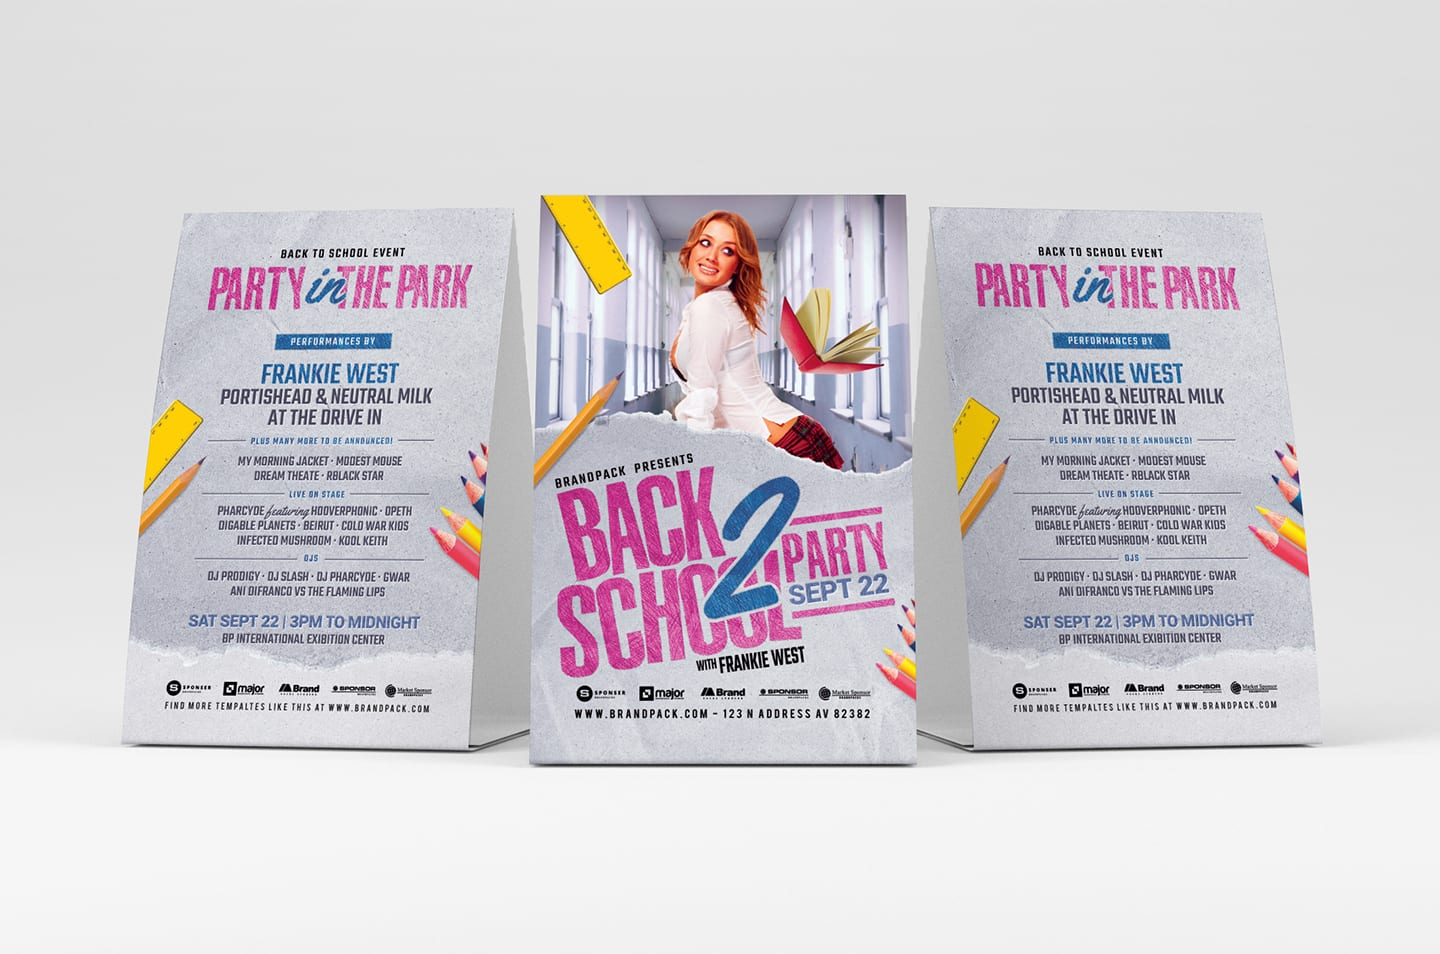 Back to School Flyer Templates - PSD, Ai & Vector - BrandPacks